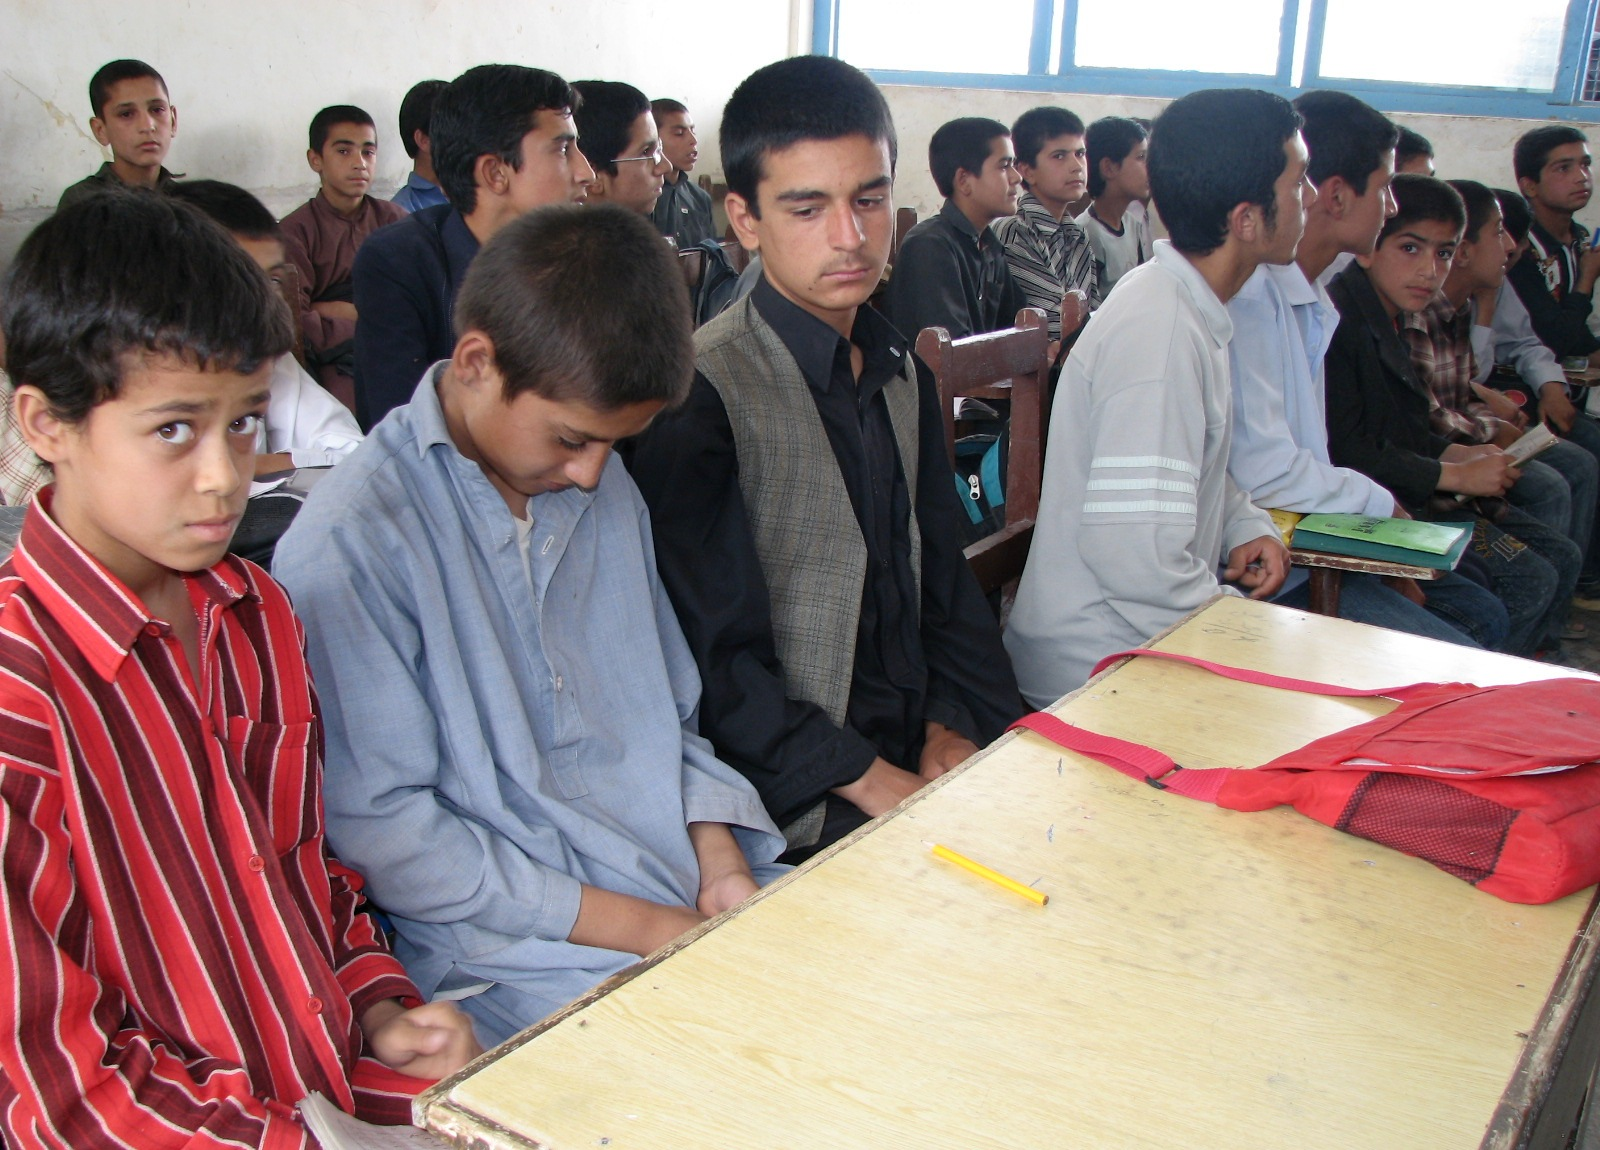 Students in a class in Helmand Province in September 2009